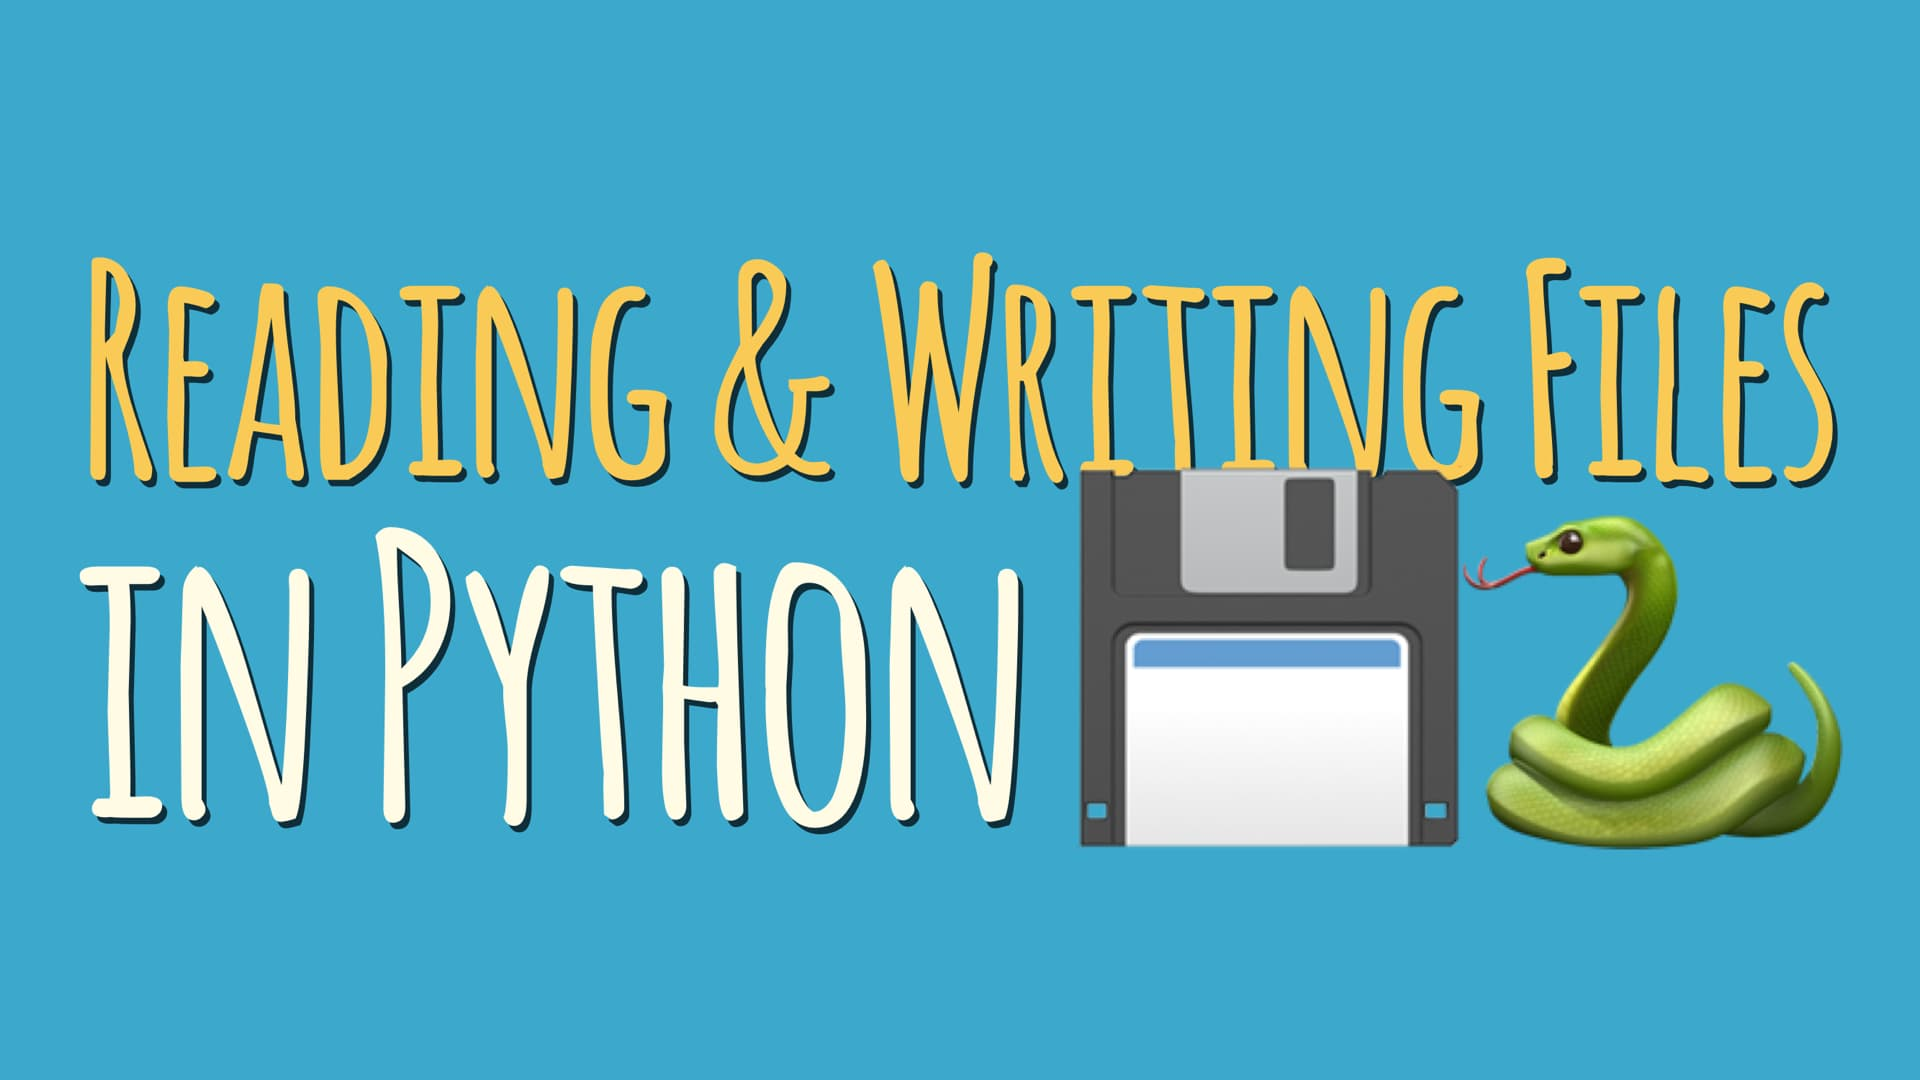 Working With File I/O in Python